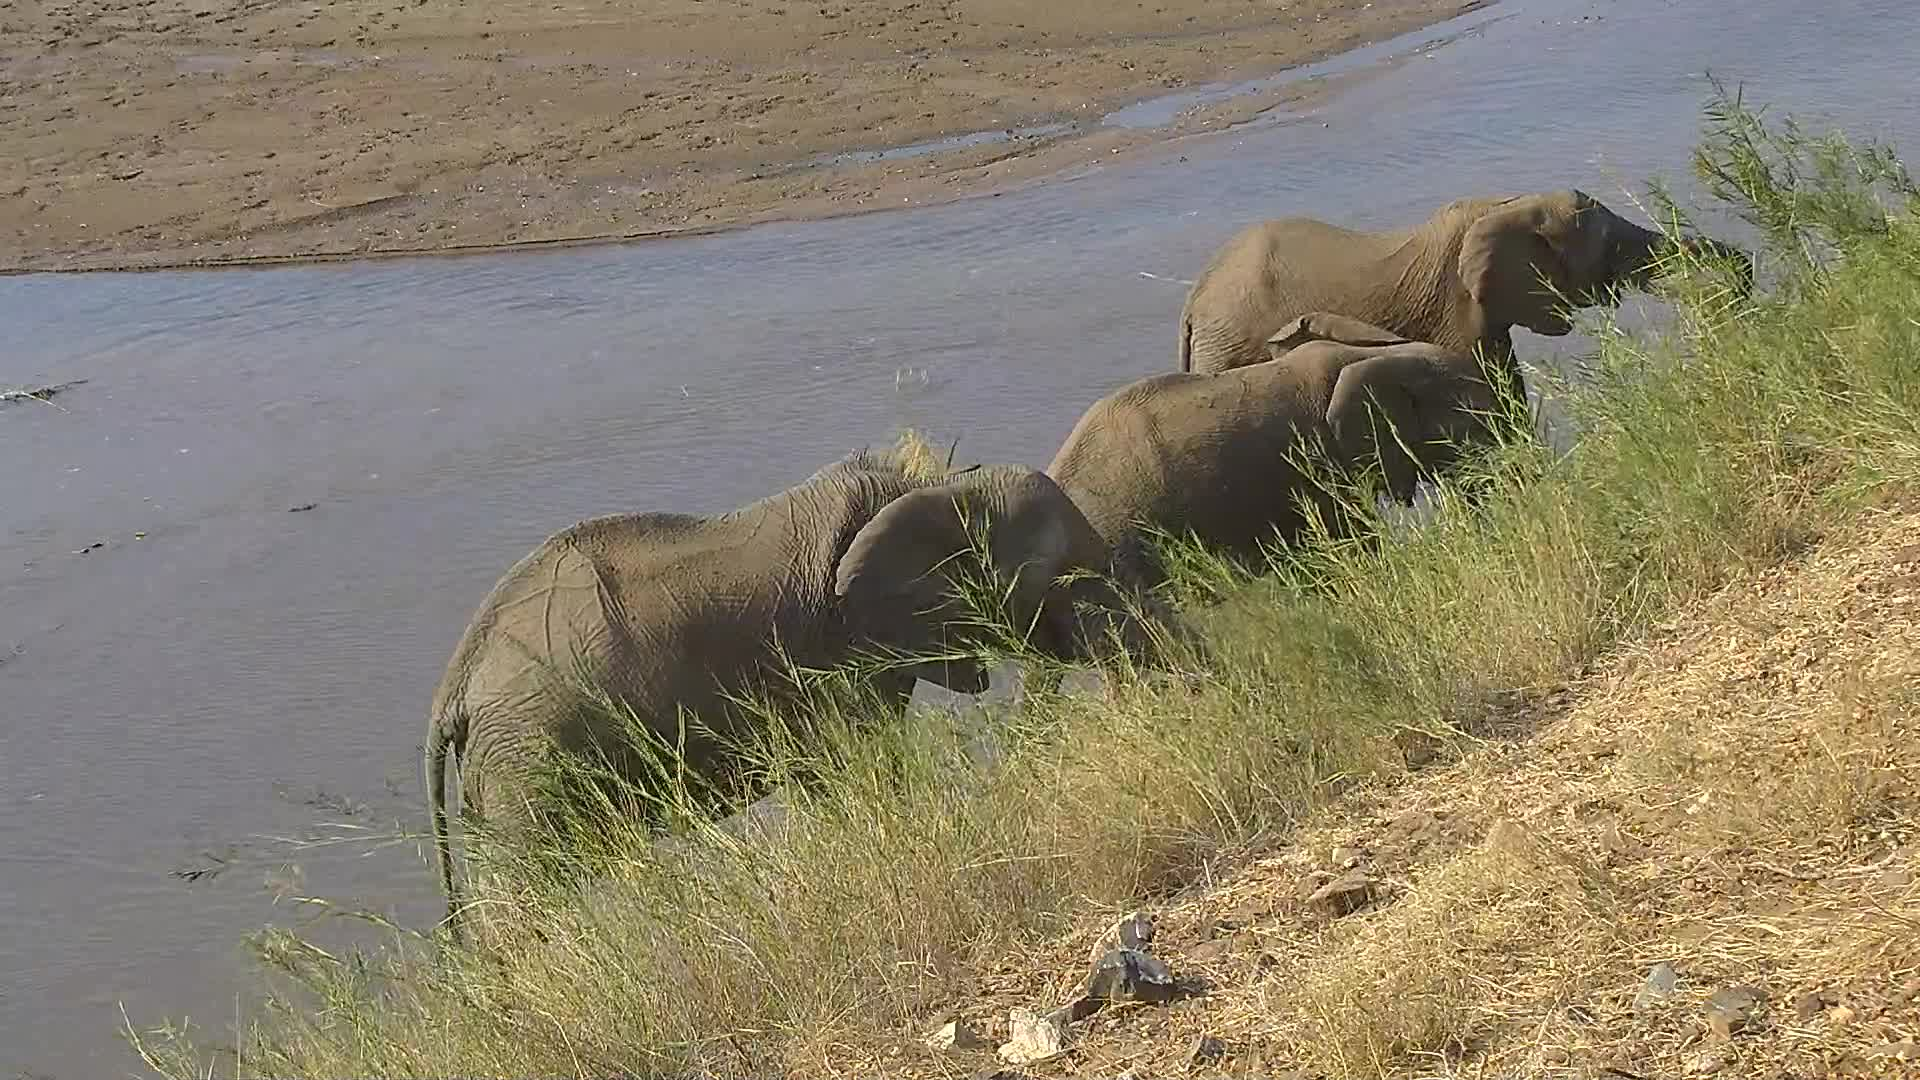 VIDEO: Elephants enjoy the reed and try also to get green leaves